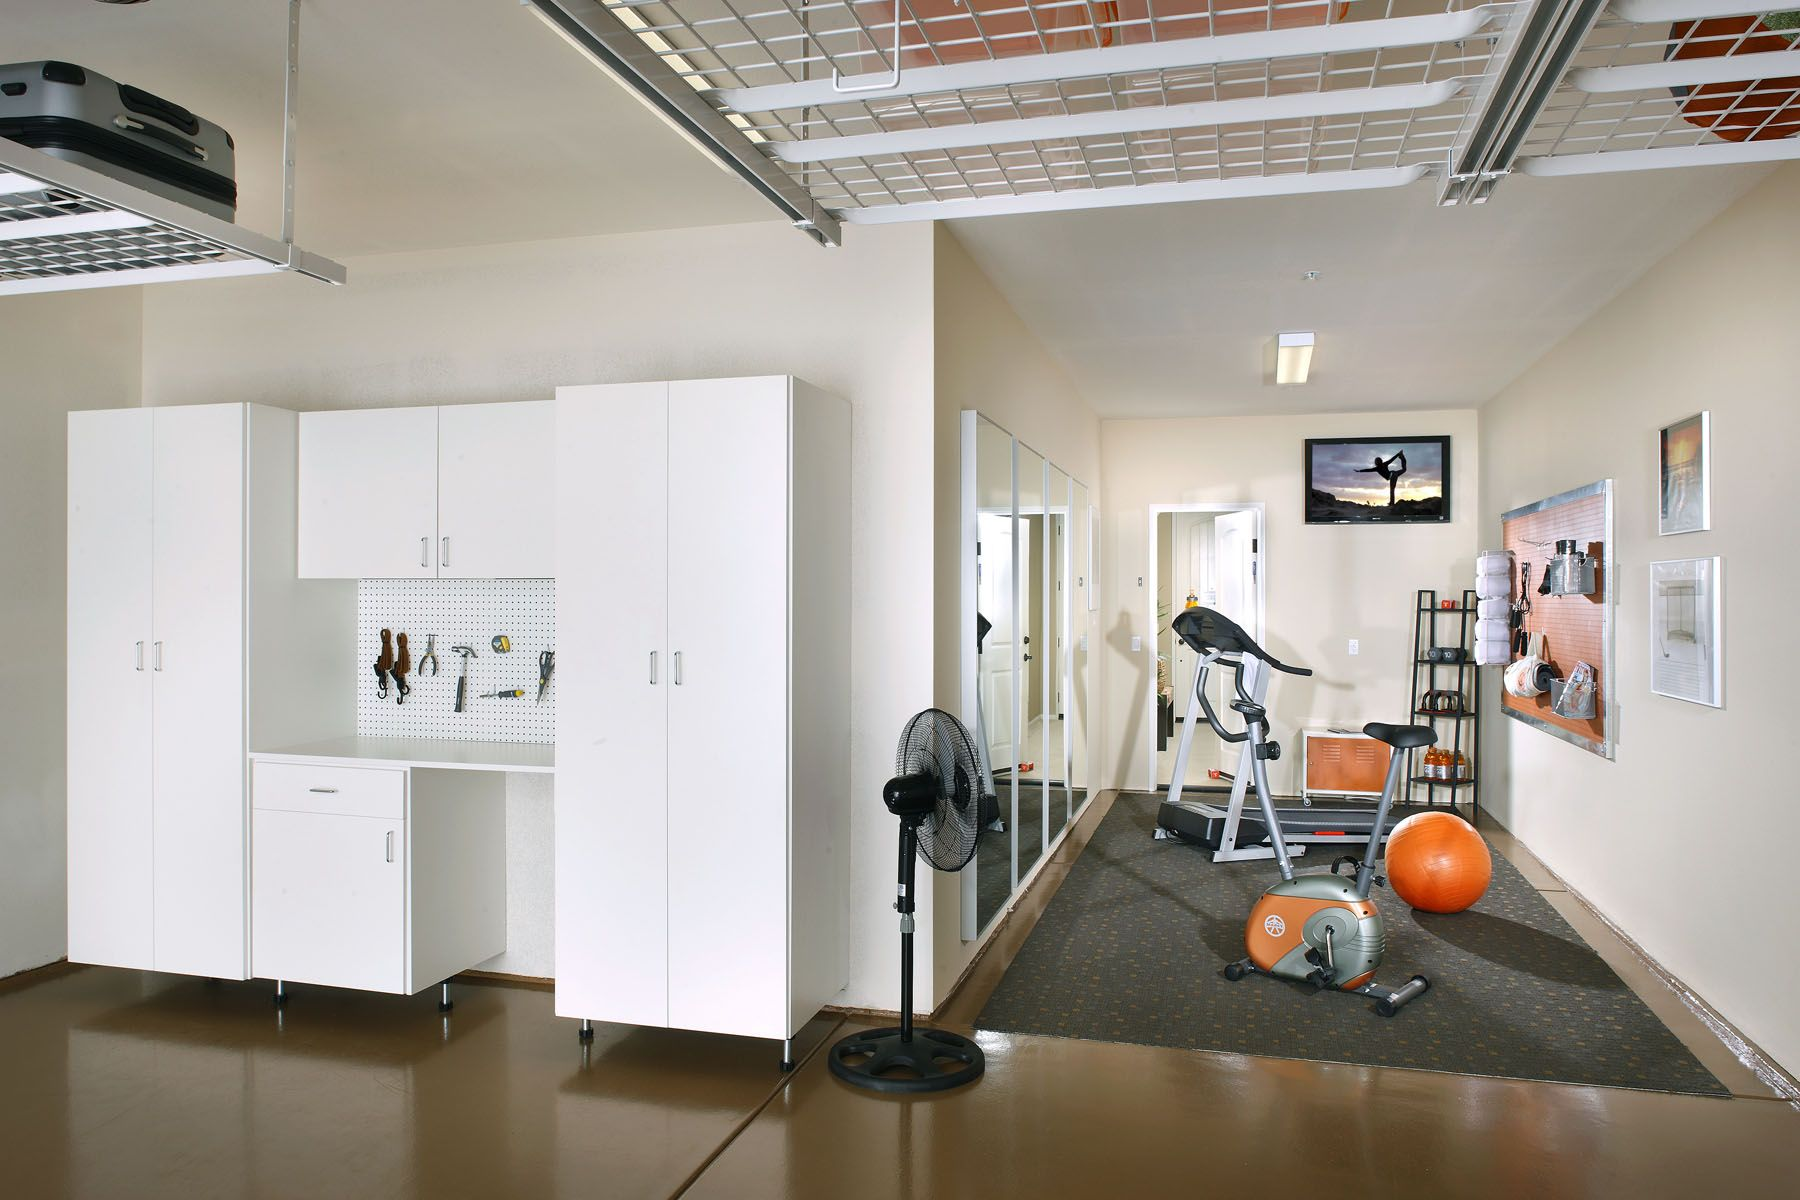 Garage Gym Storage Ideas Looks To Be About The Same Size As My Room I Like The